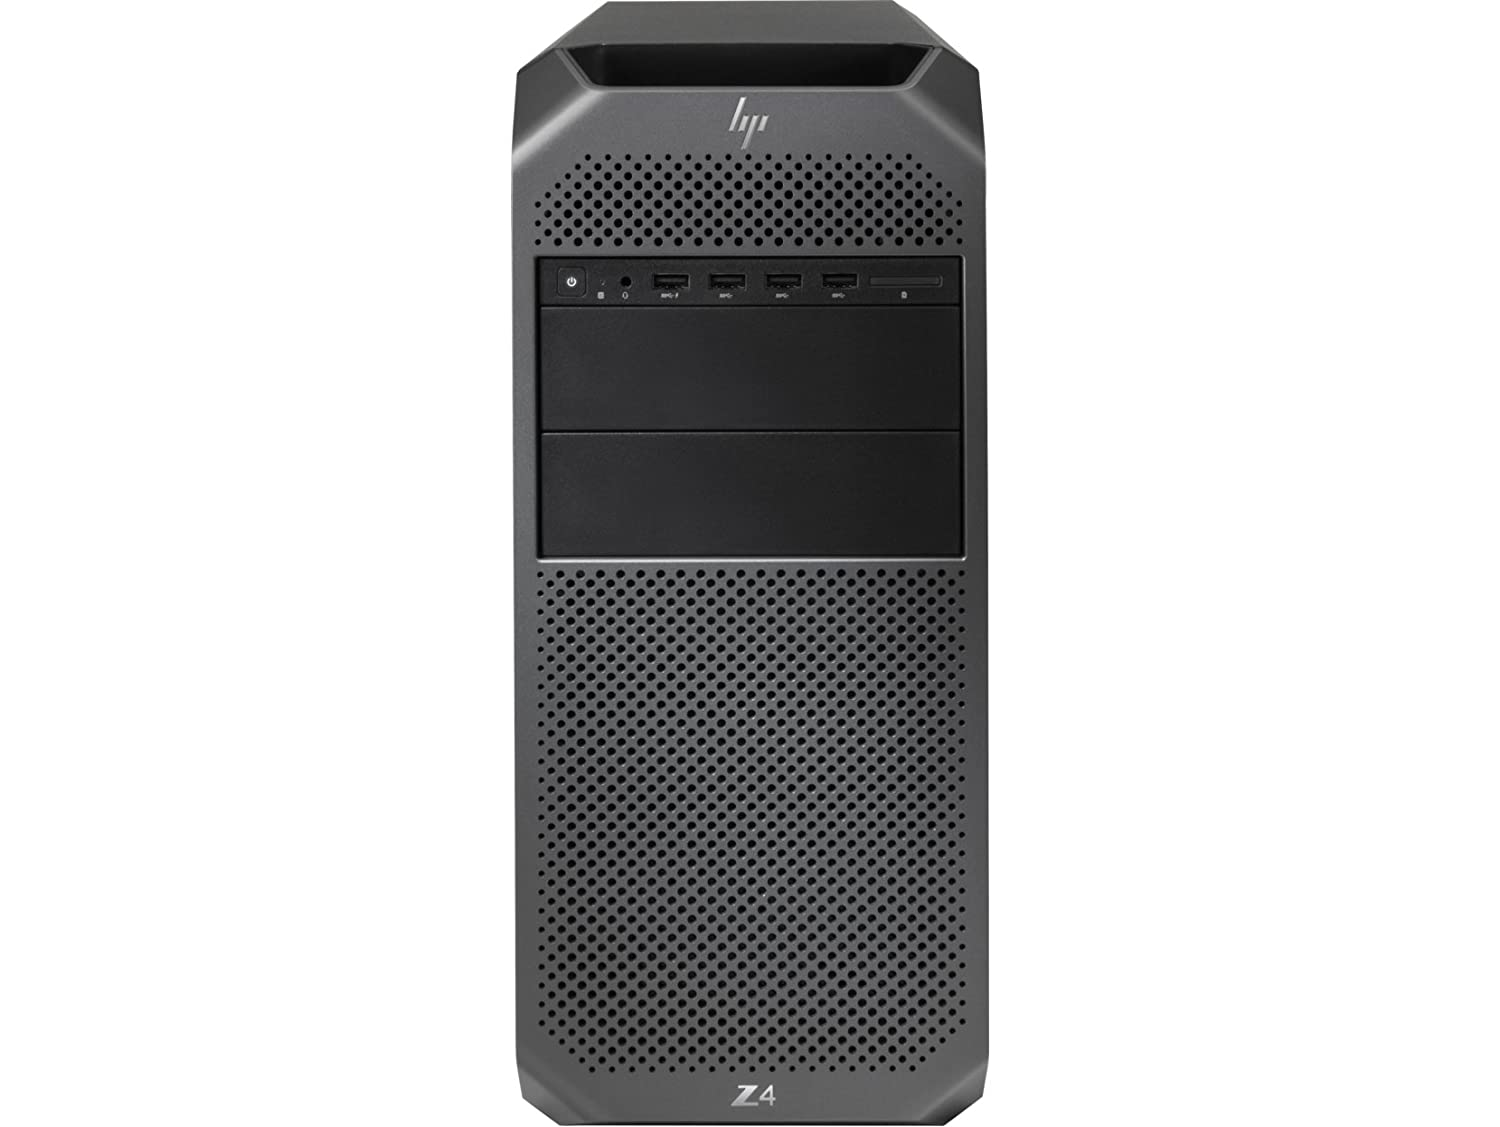 HP Z4 G4 3,60 GHz Intel® Xeon® W-2123 Negro Torre Puesto de Trabajo - Ordenador de sobremesa (3,60 GHz, Intel® Xeon®, 16 GB, 1000 GB, DVD-RW, Windows 10 Pro for Workstations)